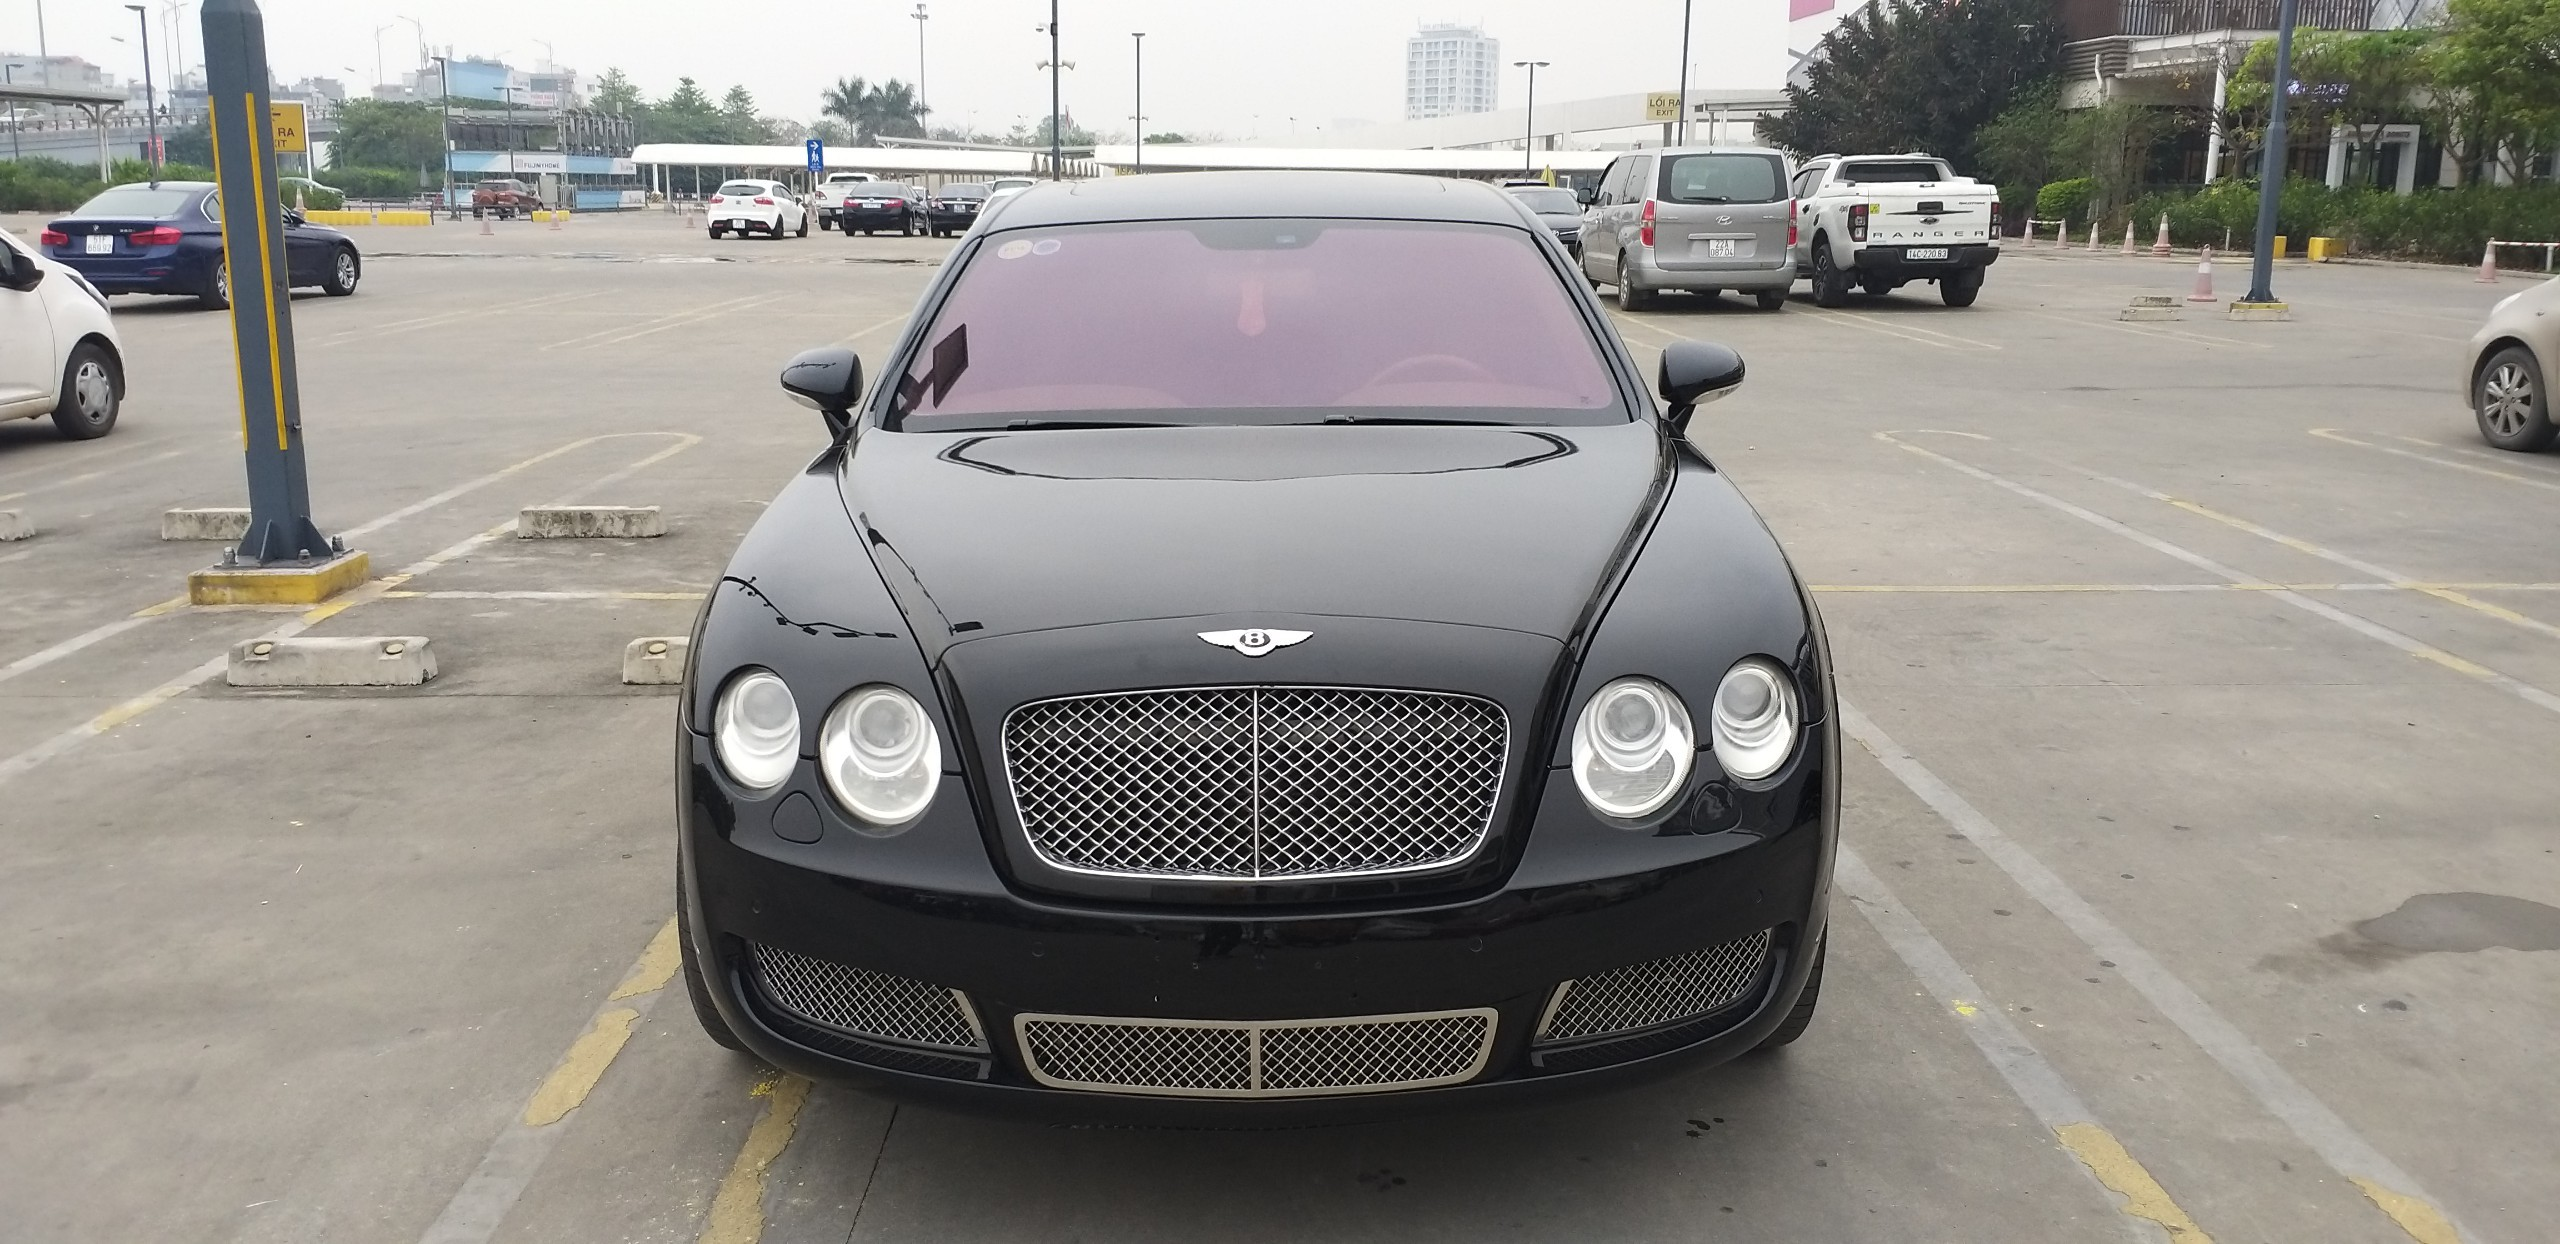 Bán Bentley Continental Flying Spur 2006 Ảnh số 42325209